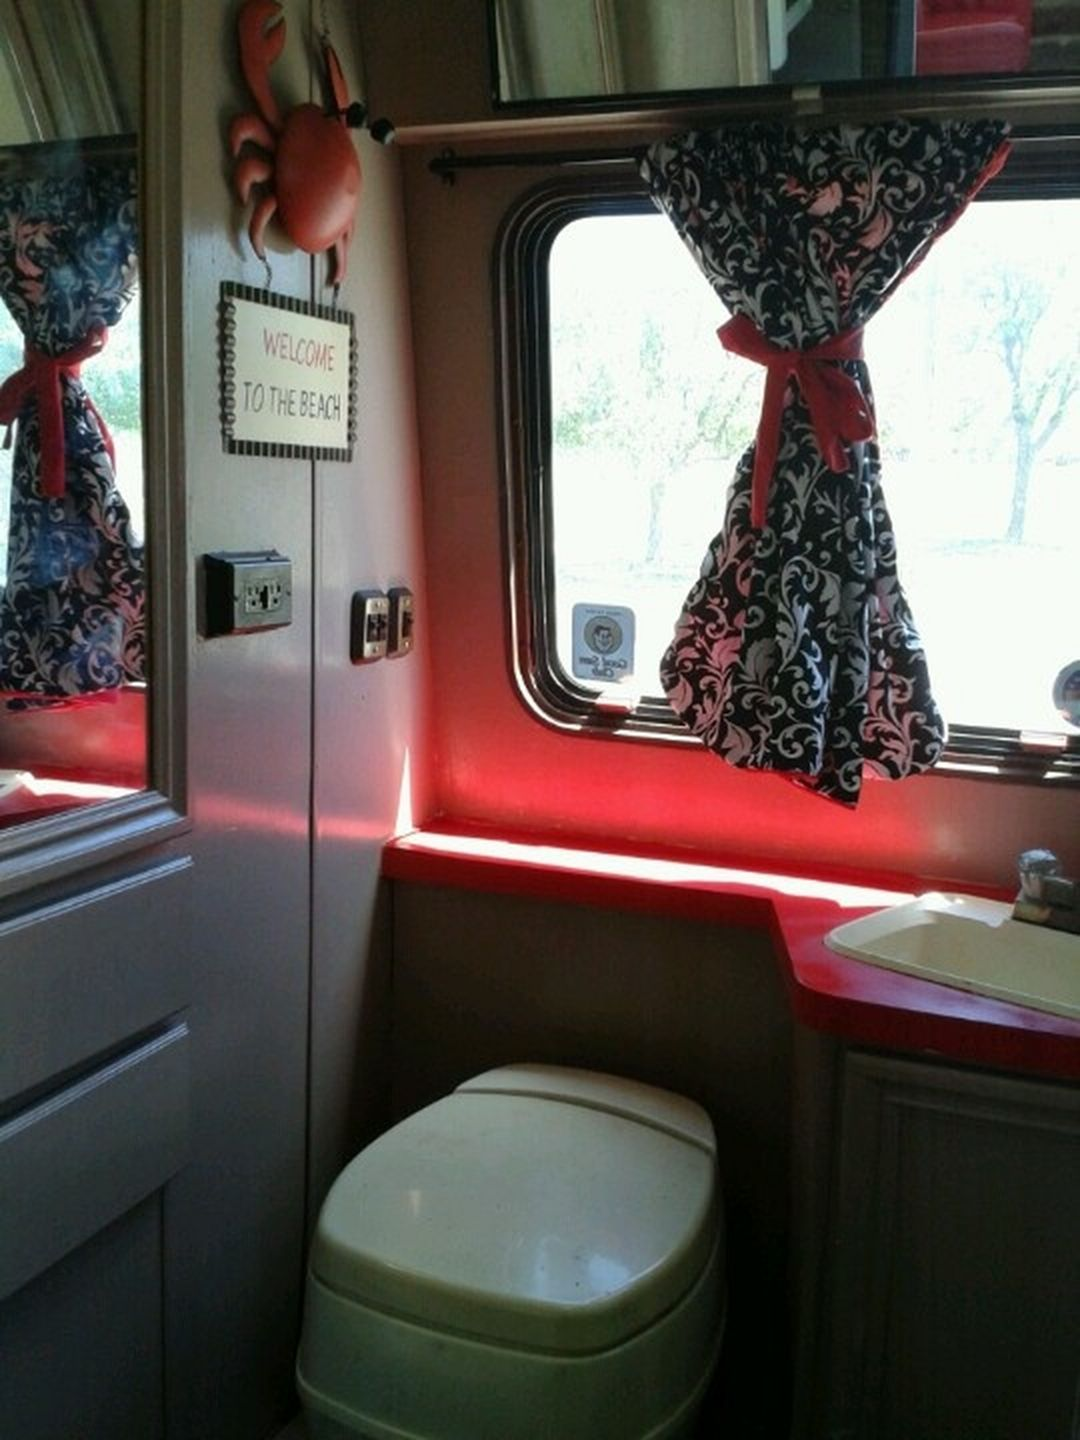 Outstanding 25+ Best RV Bathroom Remodeling Picture Collections For Inspiration https://wahyuputra.com/bathroom/25-best-rv-bathroom-remodeling-picture-collections-for-inspiration-2250/